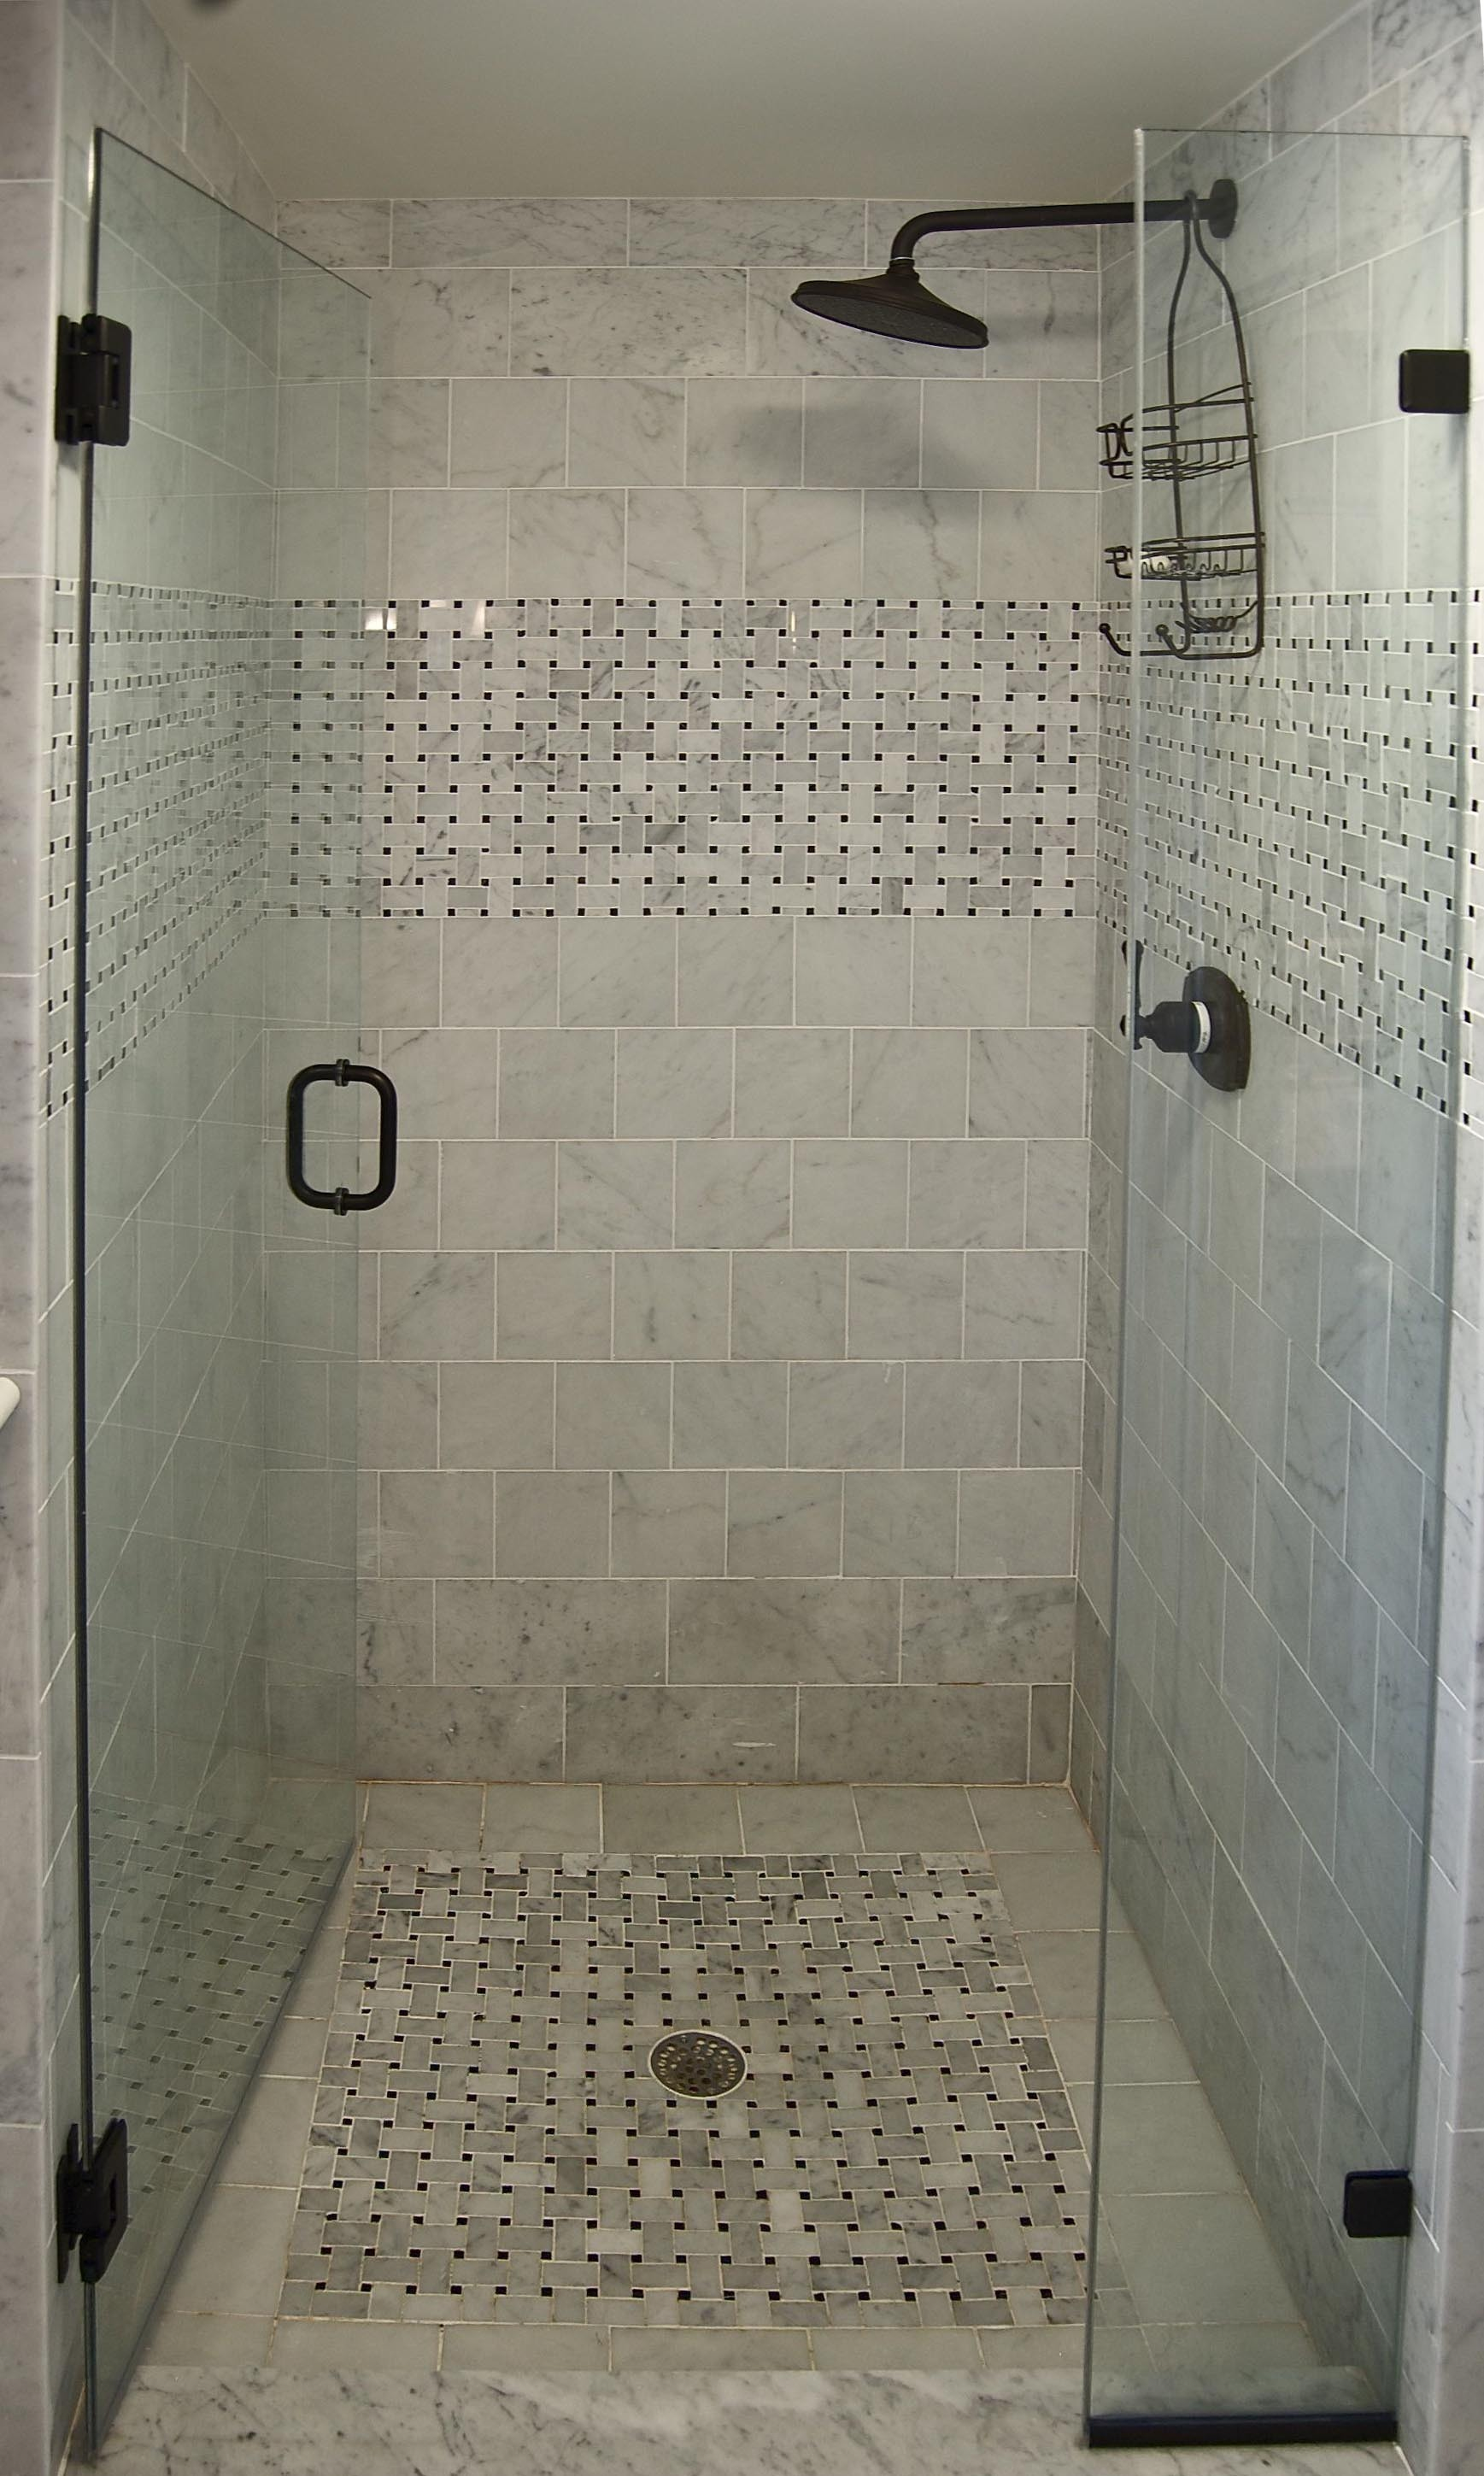 beautiful-how-to-design-a-small-bathroom-9-small-bathroom-design-tile-showers-ideas-1737-x-2898